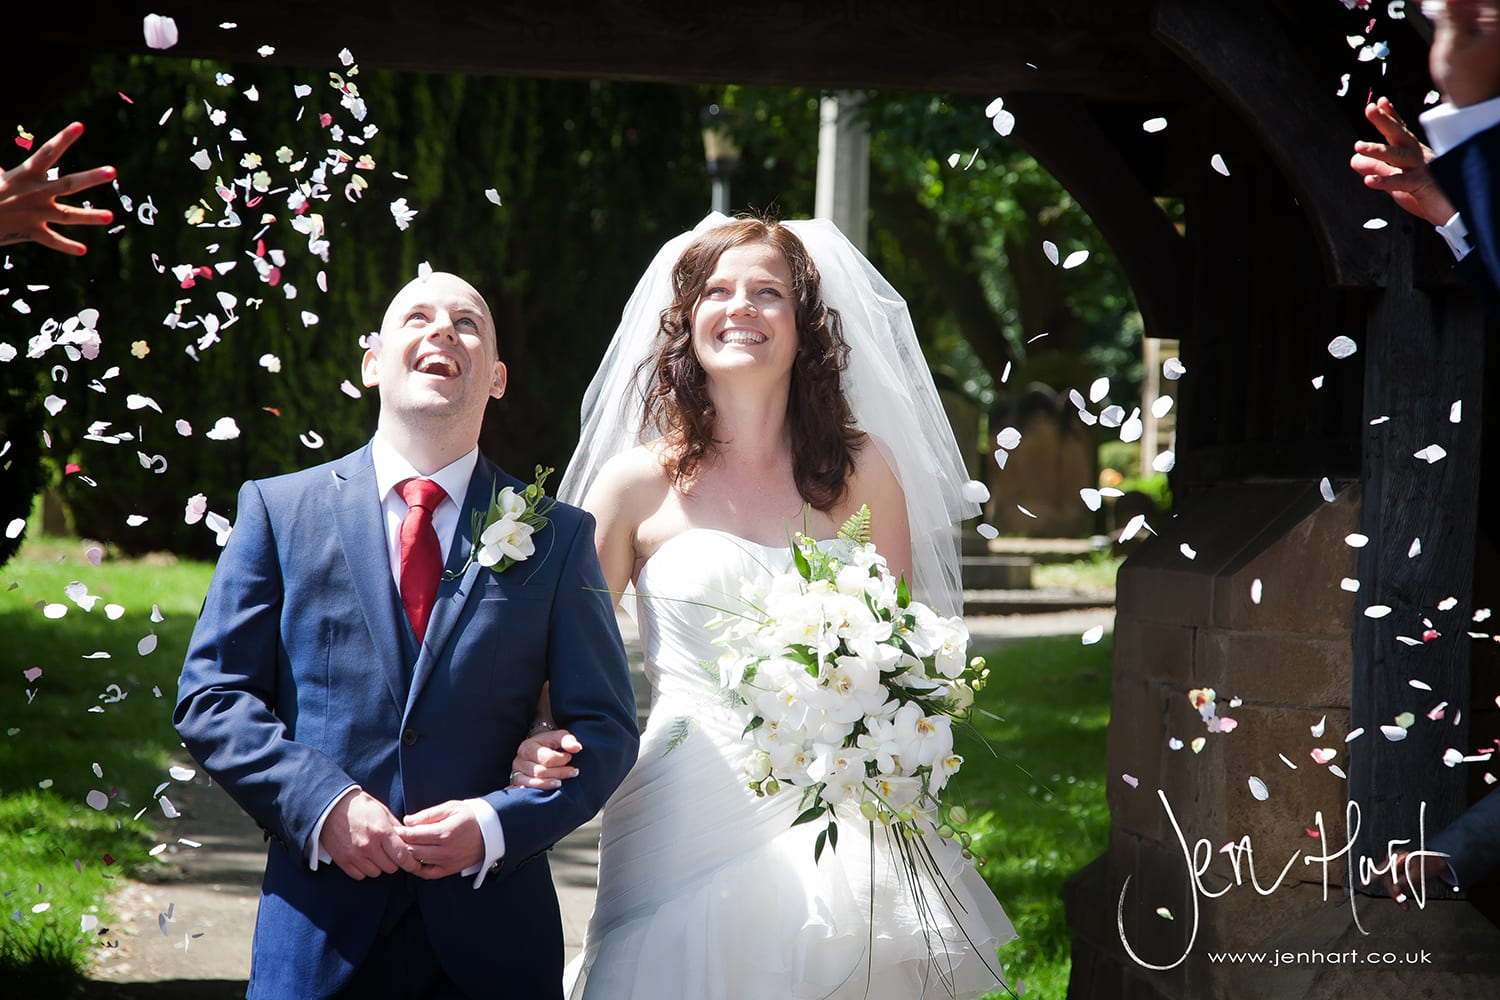 Real wedding: David & Joanne's fun, beautiful and relaxed day